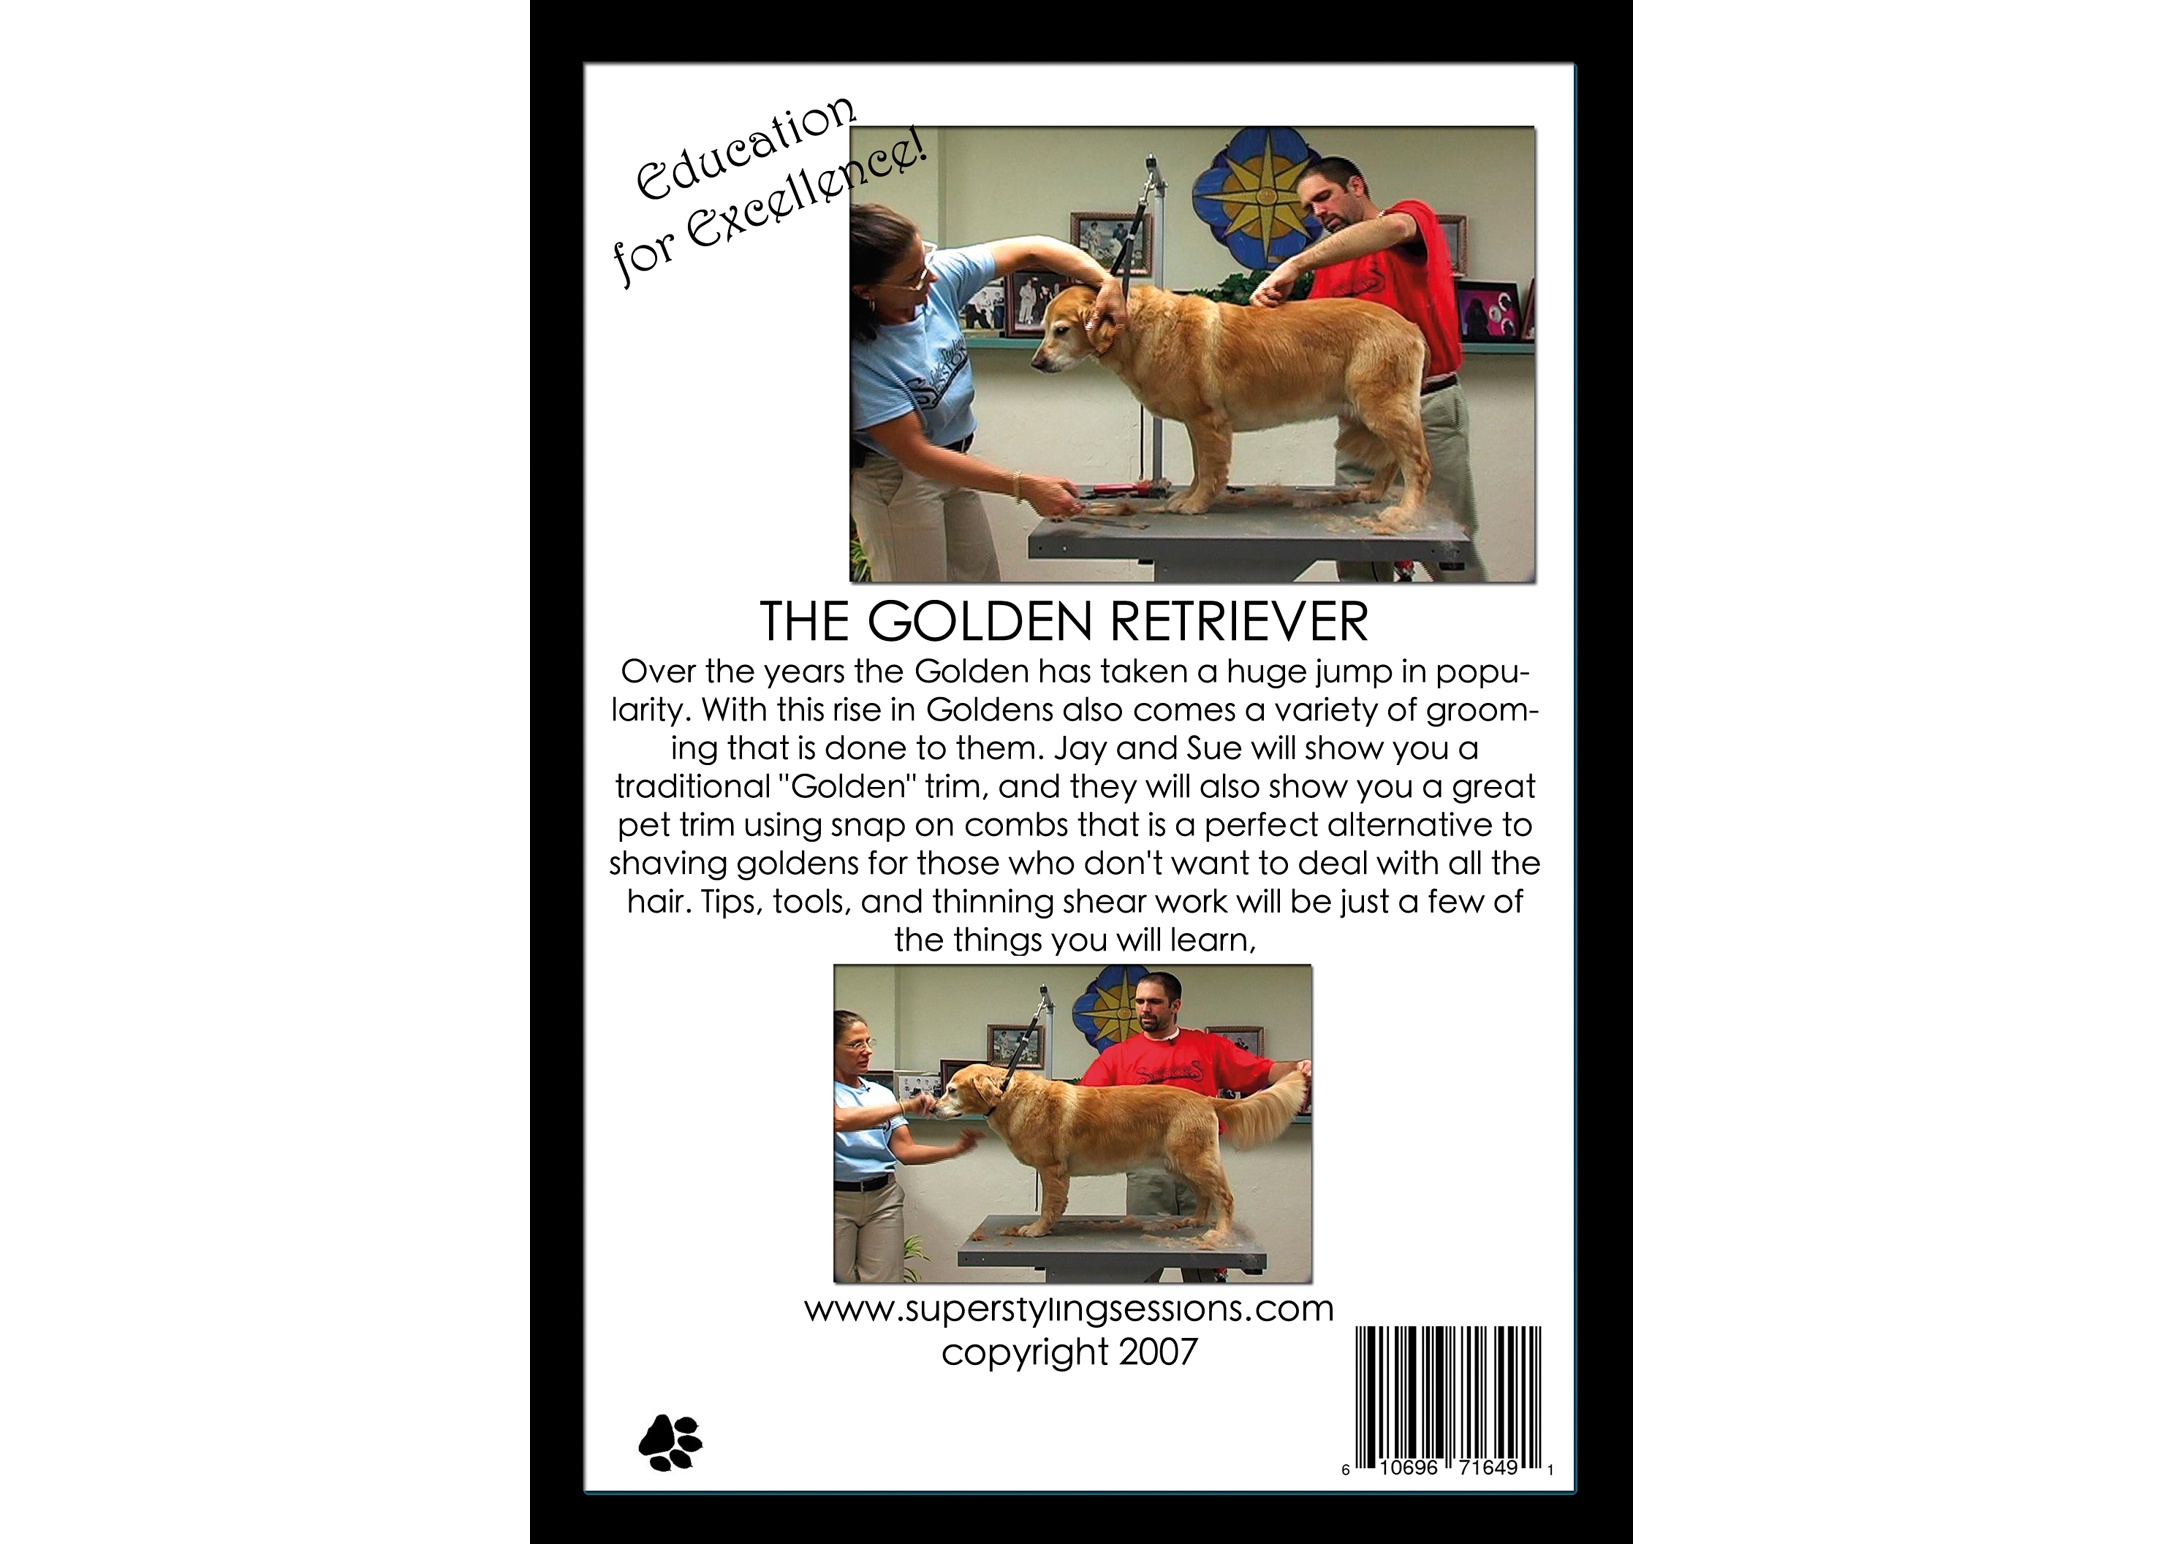 Super Styling Sessions DVD Super Styling Sessions Golden Retriever DVD éducatif